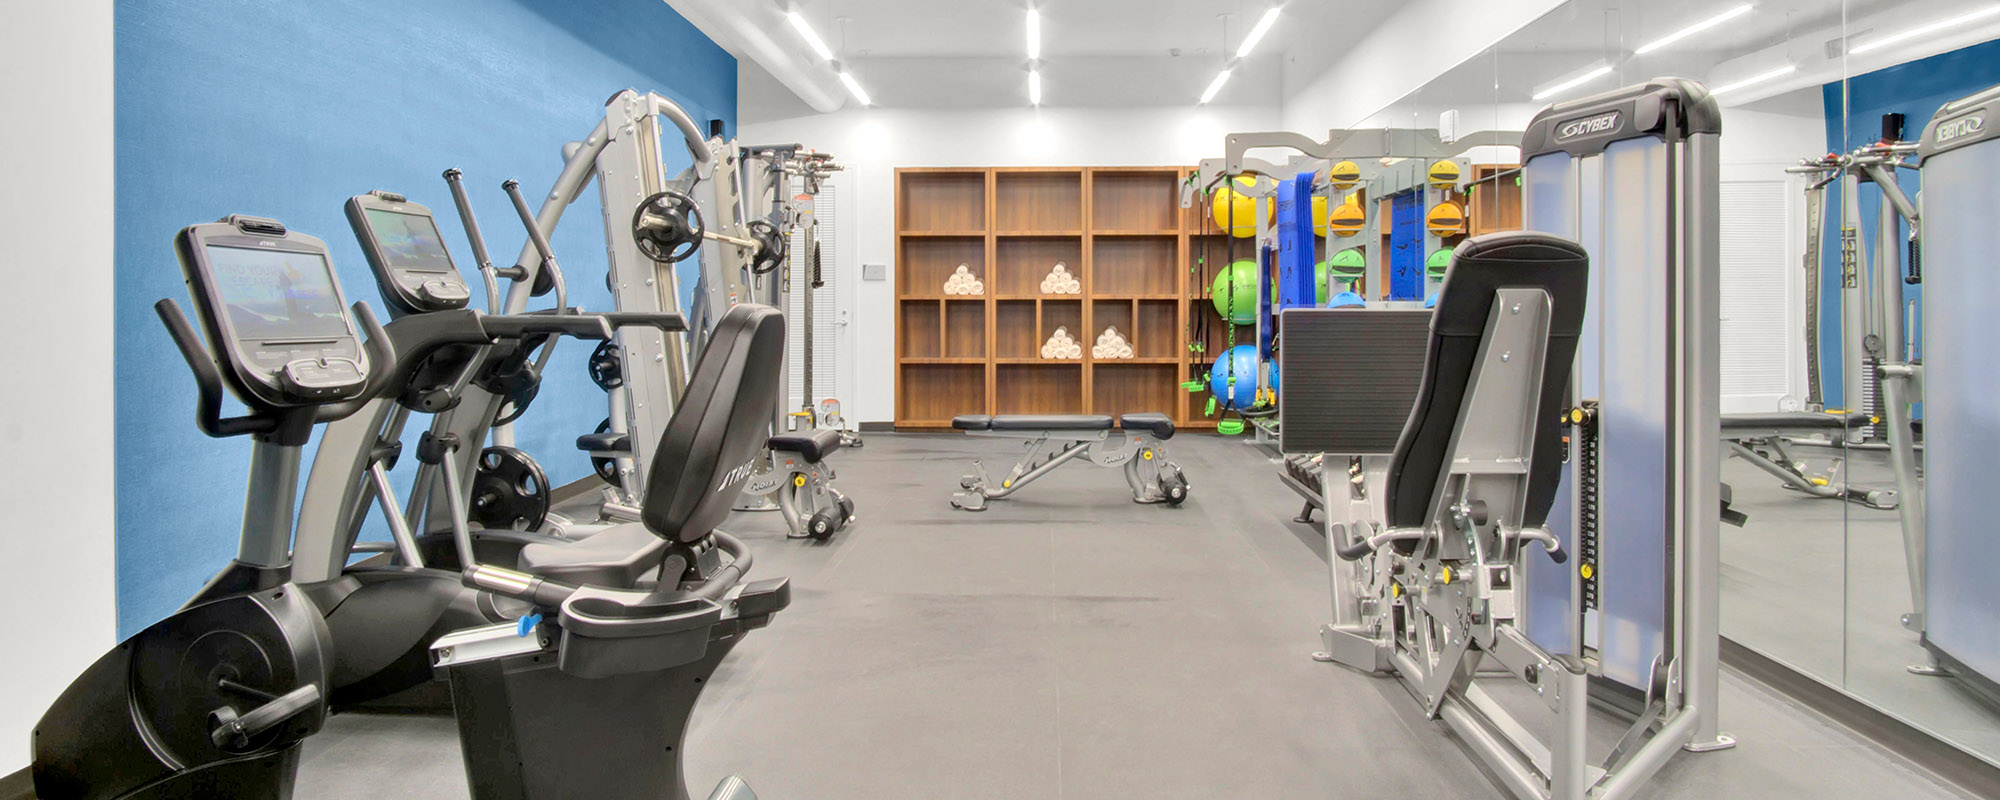 Gym amenities at Milton tower building